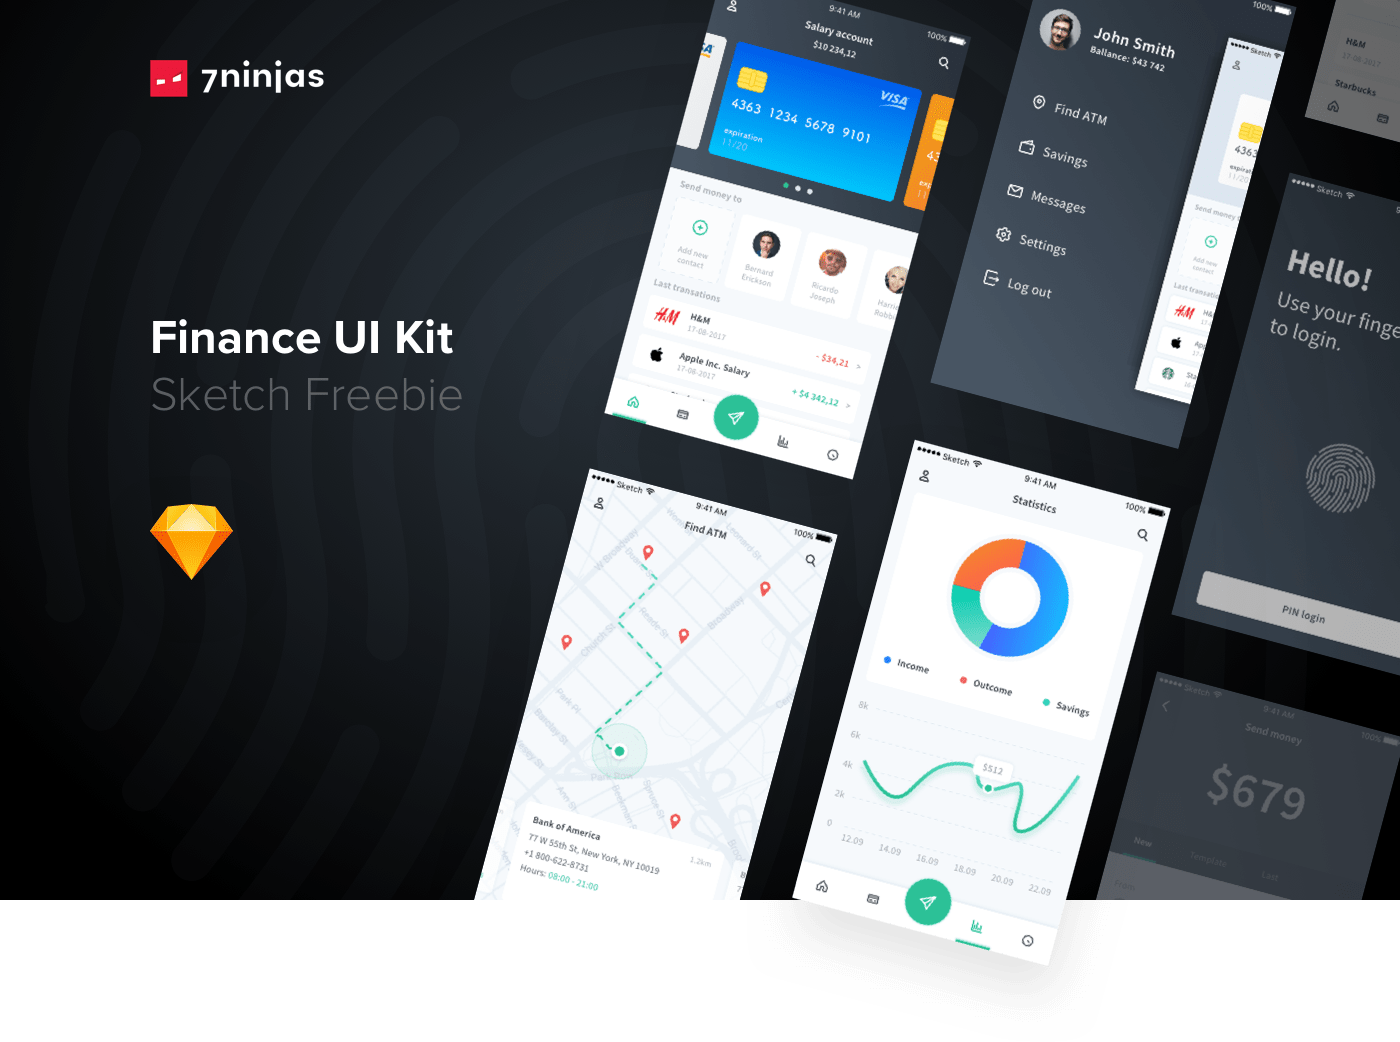 Free Finance UI Kit - Kickstart your project or just have fun with it. Designed by 7ninjas